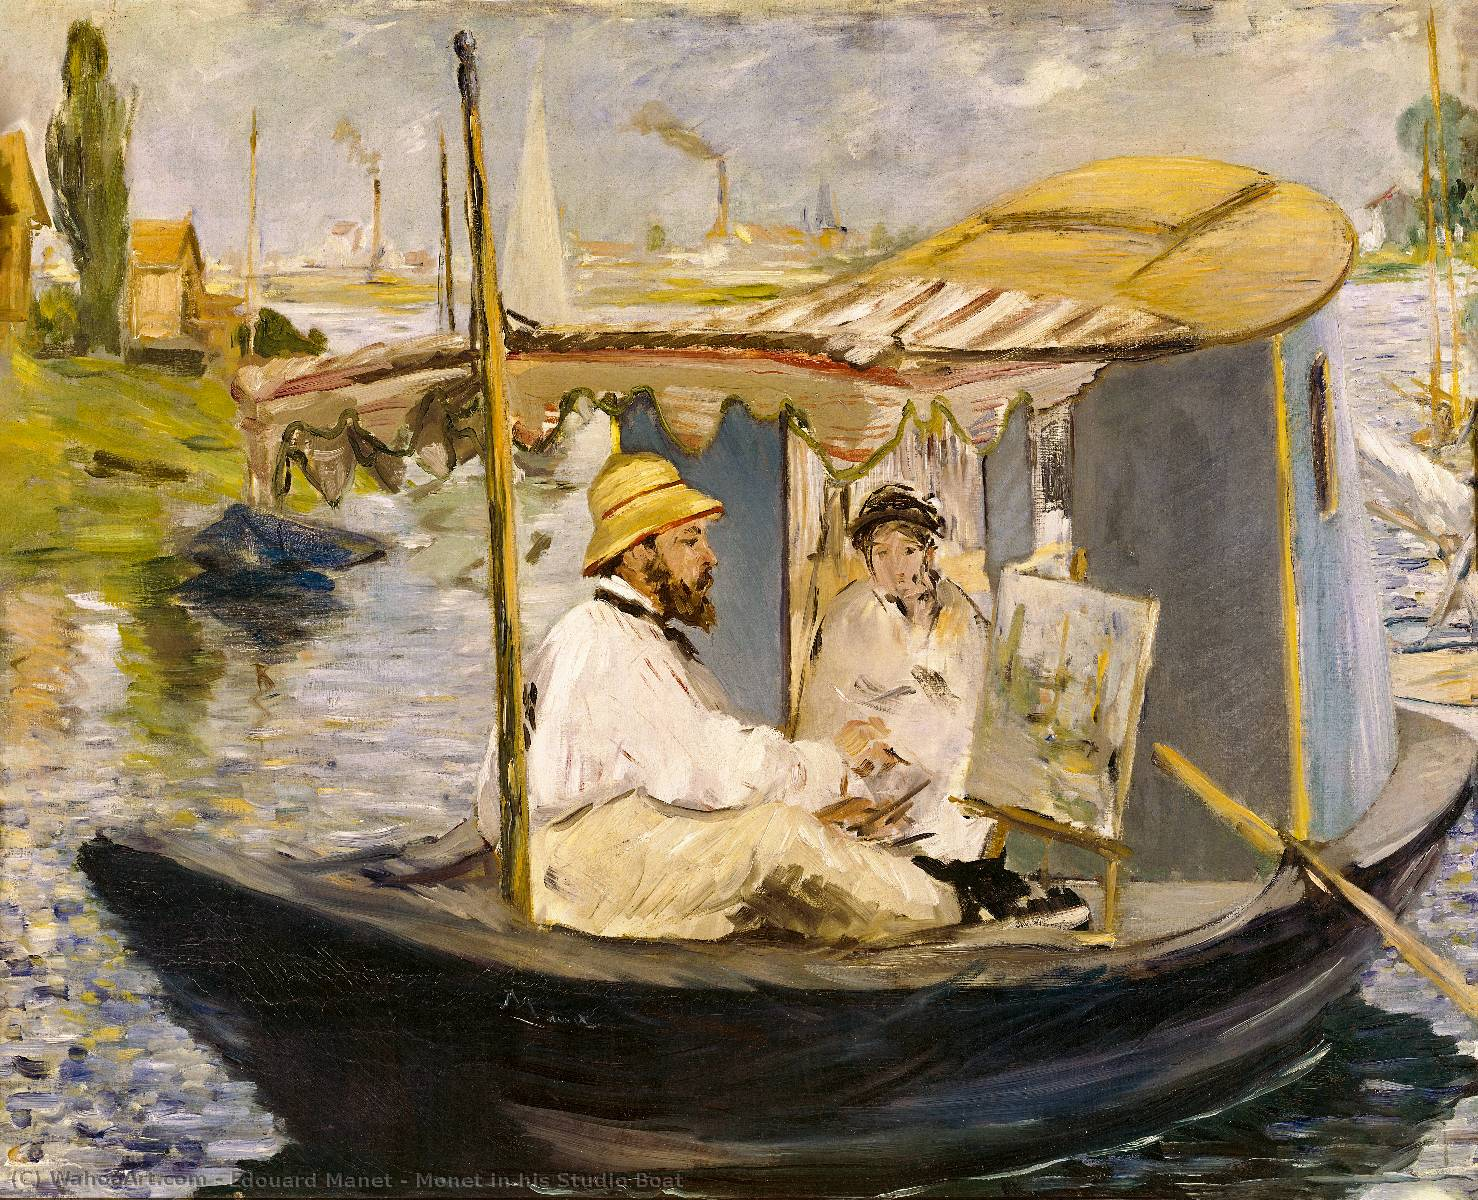 Monet in his Studio Boat, 1874 by Edouard Manet (1832-1883, France) | Painting Copy | WahooArt.com